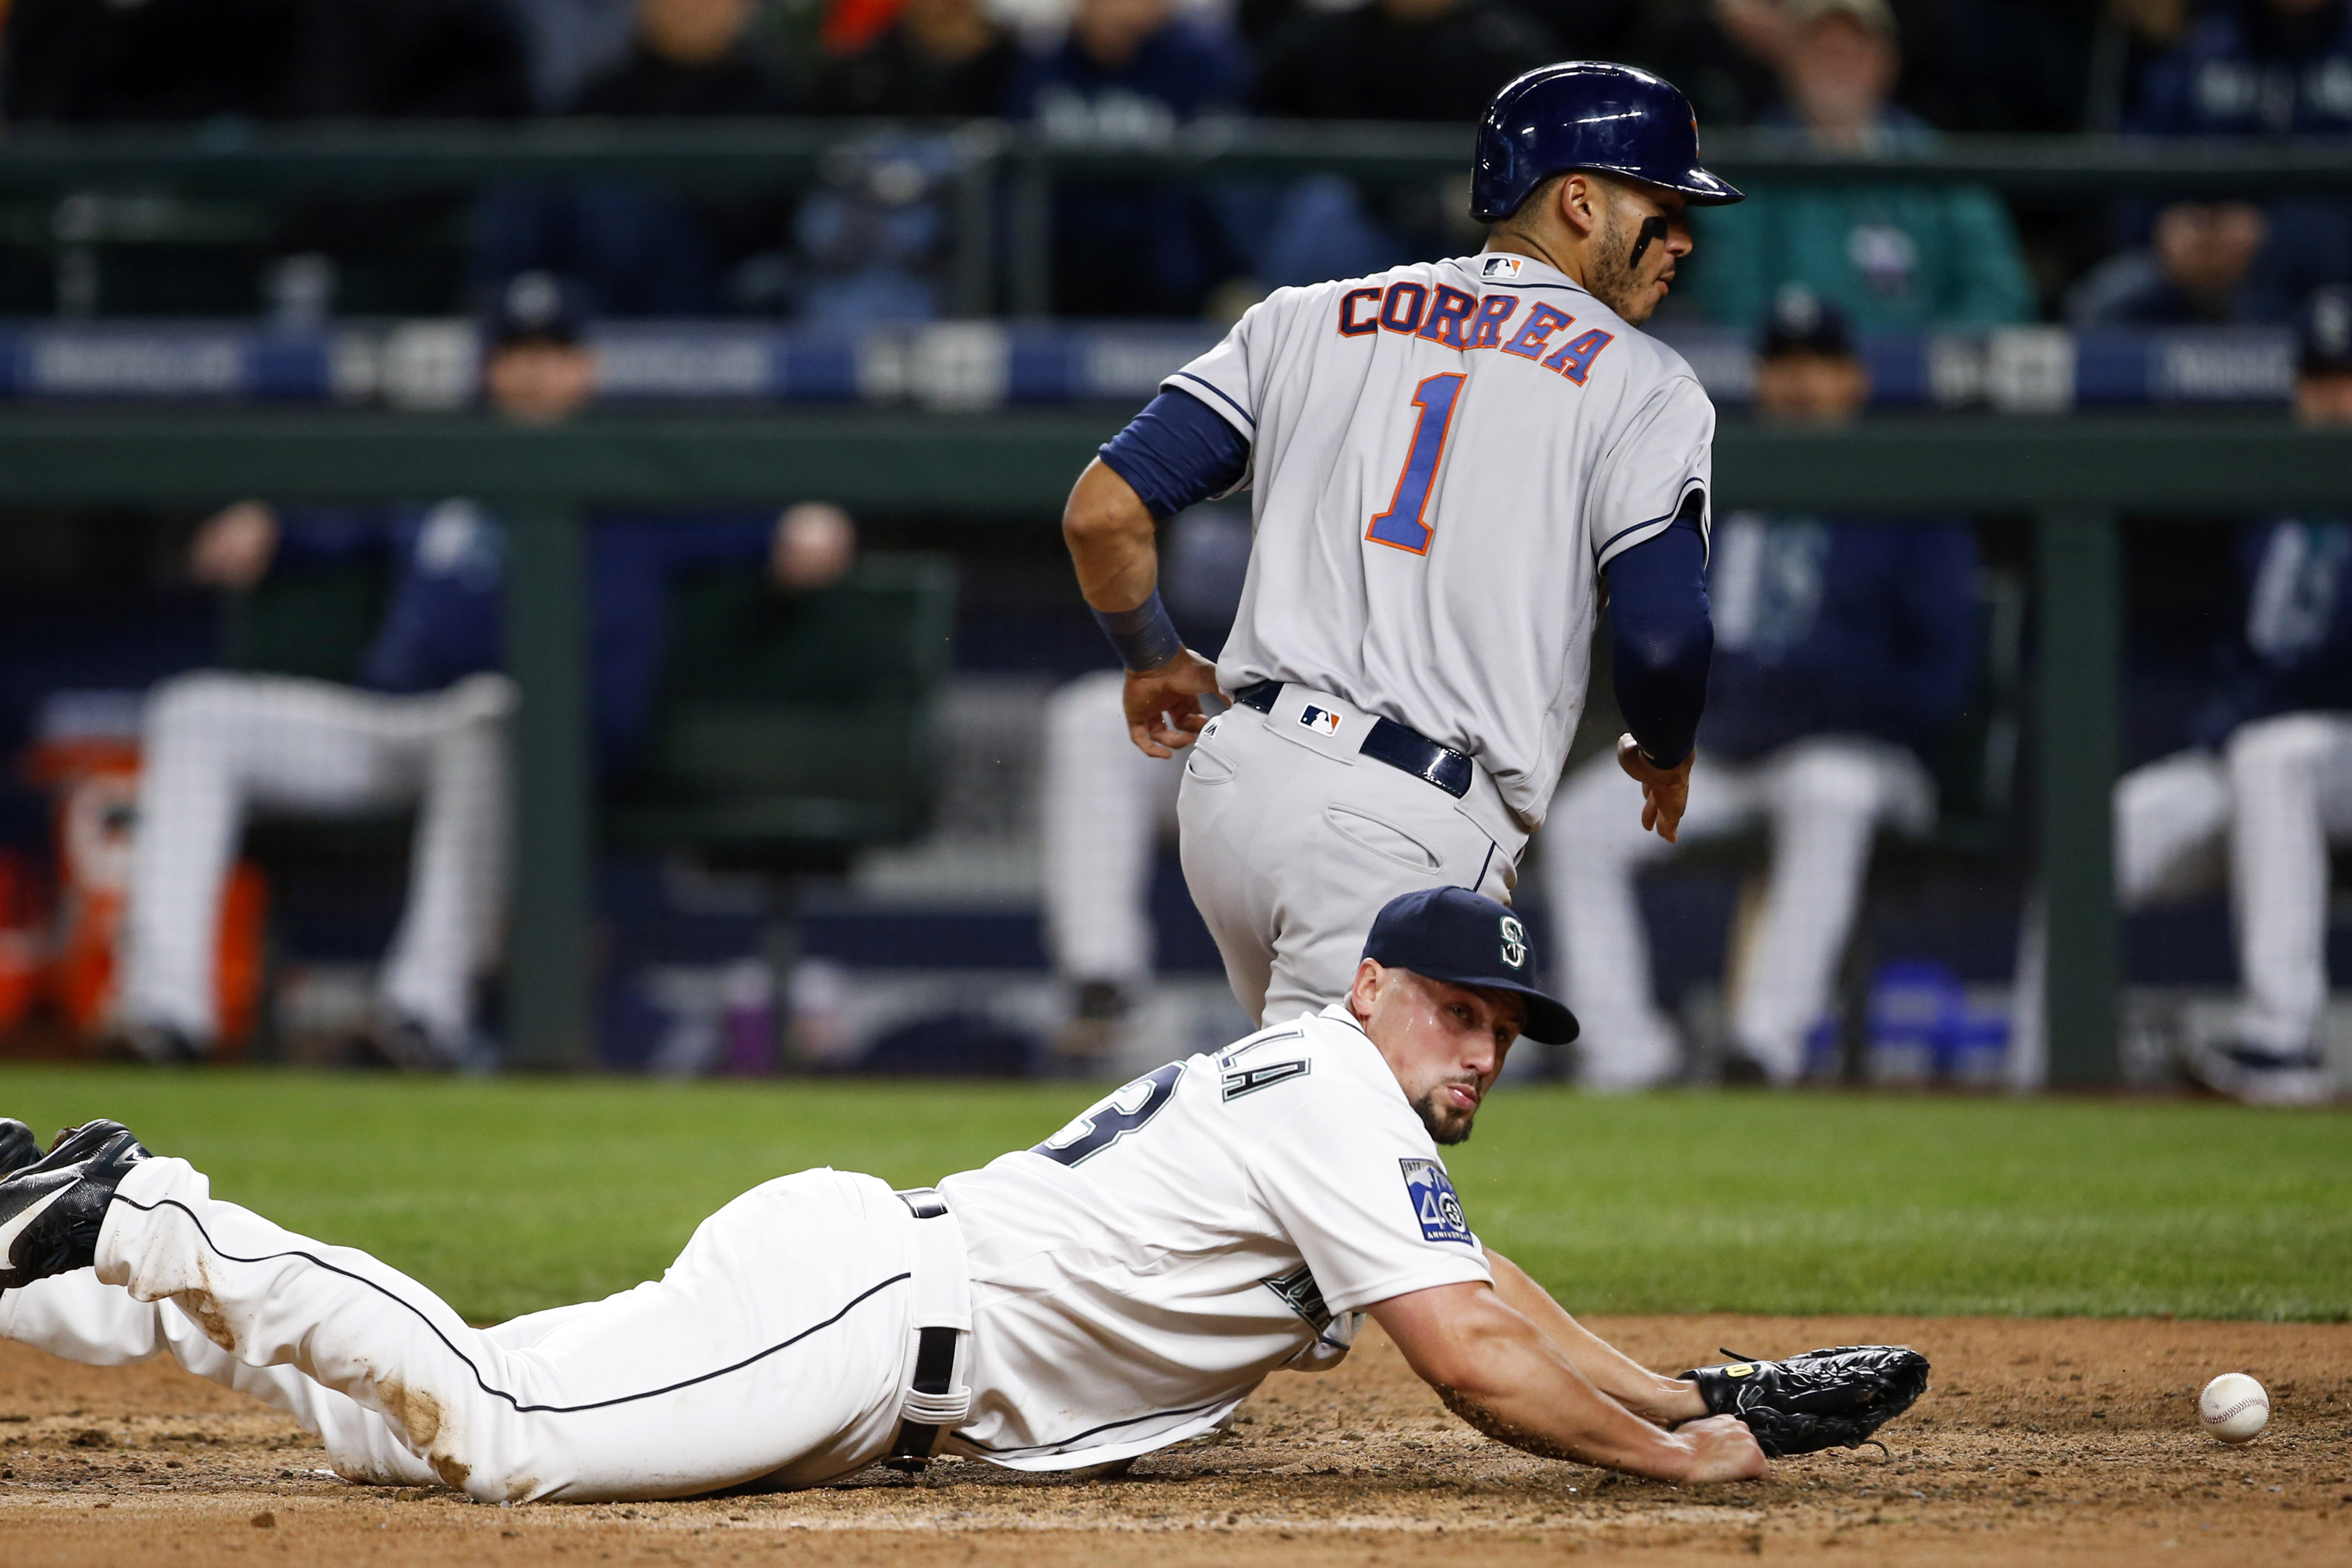 10009699-mlb-houston-astros-at-seattle-mariners